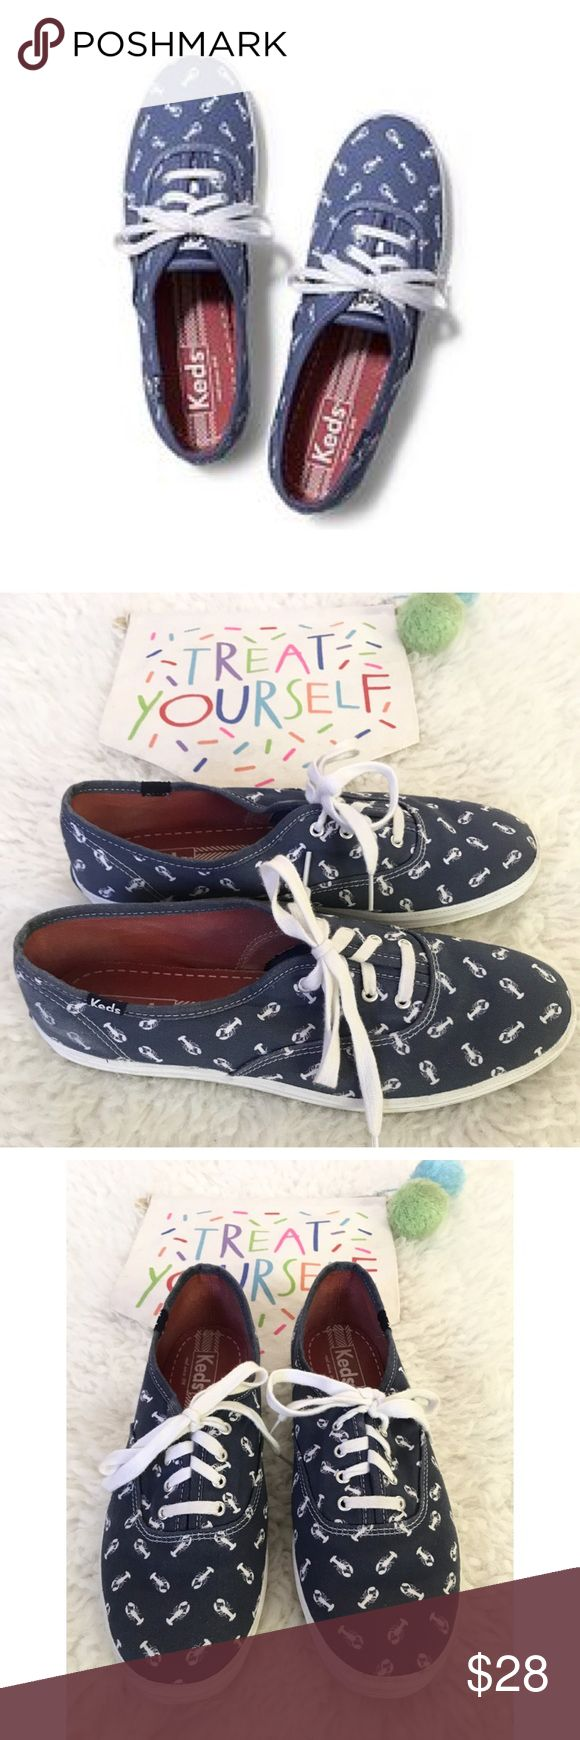 Keds Champion Lobster Denim Color Sneakers Shoes Still in good condition are here Cute Denim color sneakers from Keds in size 9.5. Cute lobster print on them. No major flaws except some marks on the back of the right side of the right shoes. Nothing too noticeable. Normal wears to the soles. ❌No trades or modeling. Always open to reasonable offers. Bundle more items to save on more. Thank you‼️ Keds Shoes Sneakers